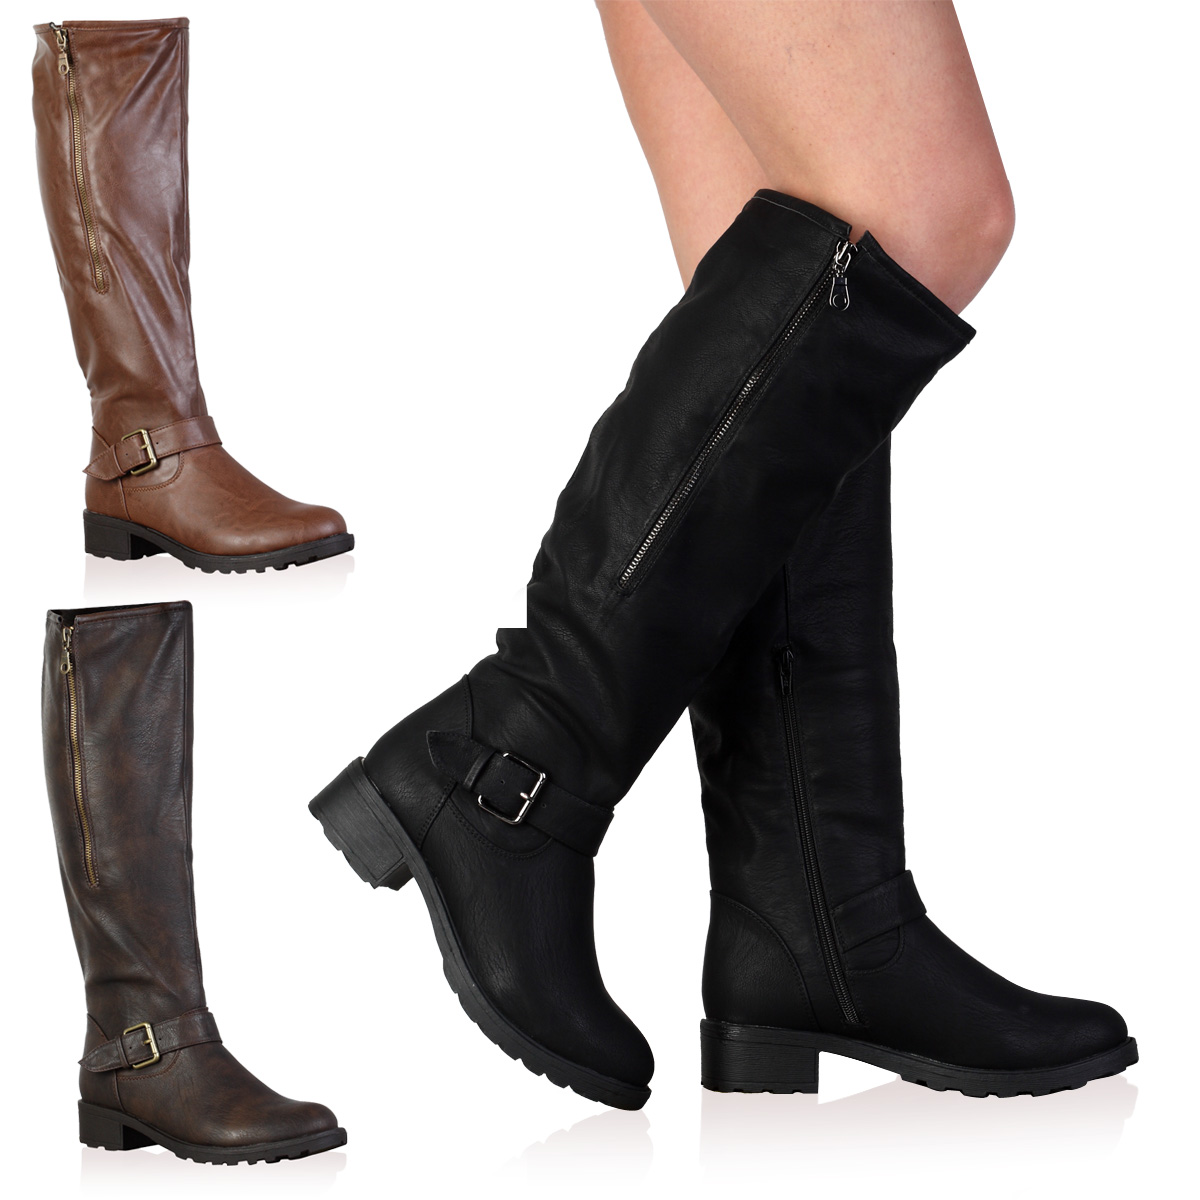 1I WOMENS FAUX LEATHER KNEE HIGH LADIES LONG WINTER FLAT RIDING ...